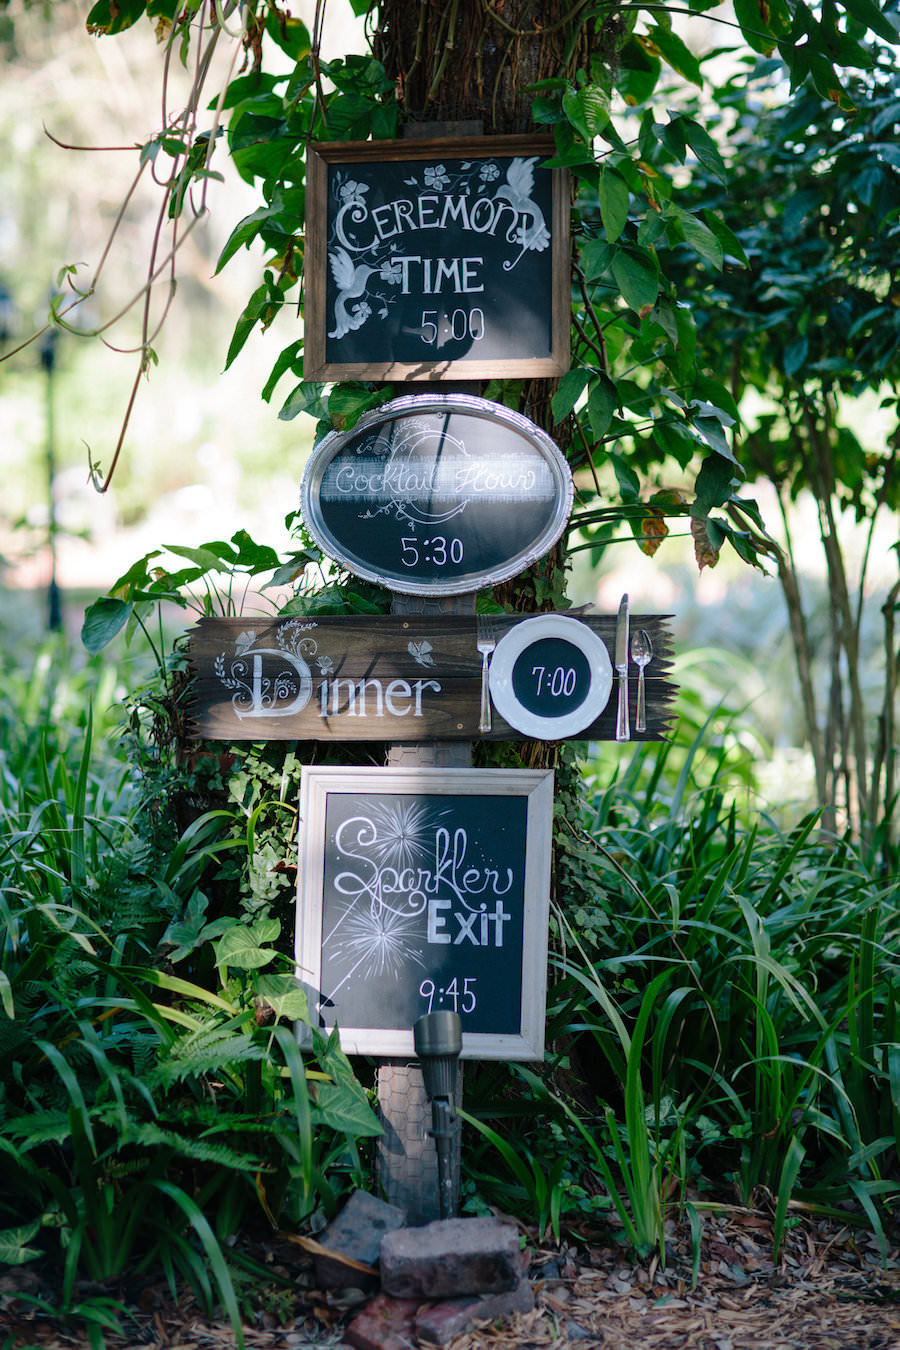 Chalkboard Wedding Ceremony and Reception Time Signs at Dover Wedding